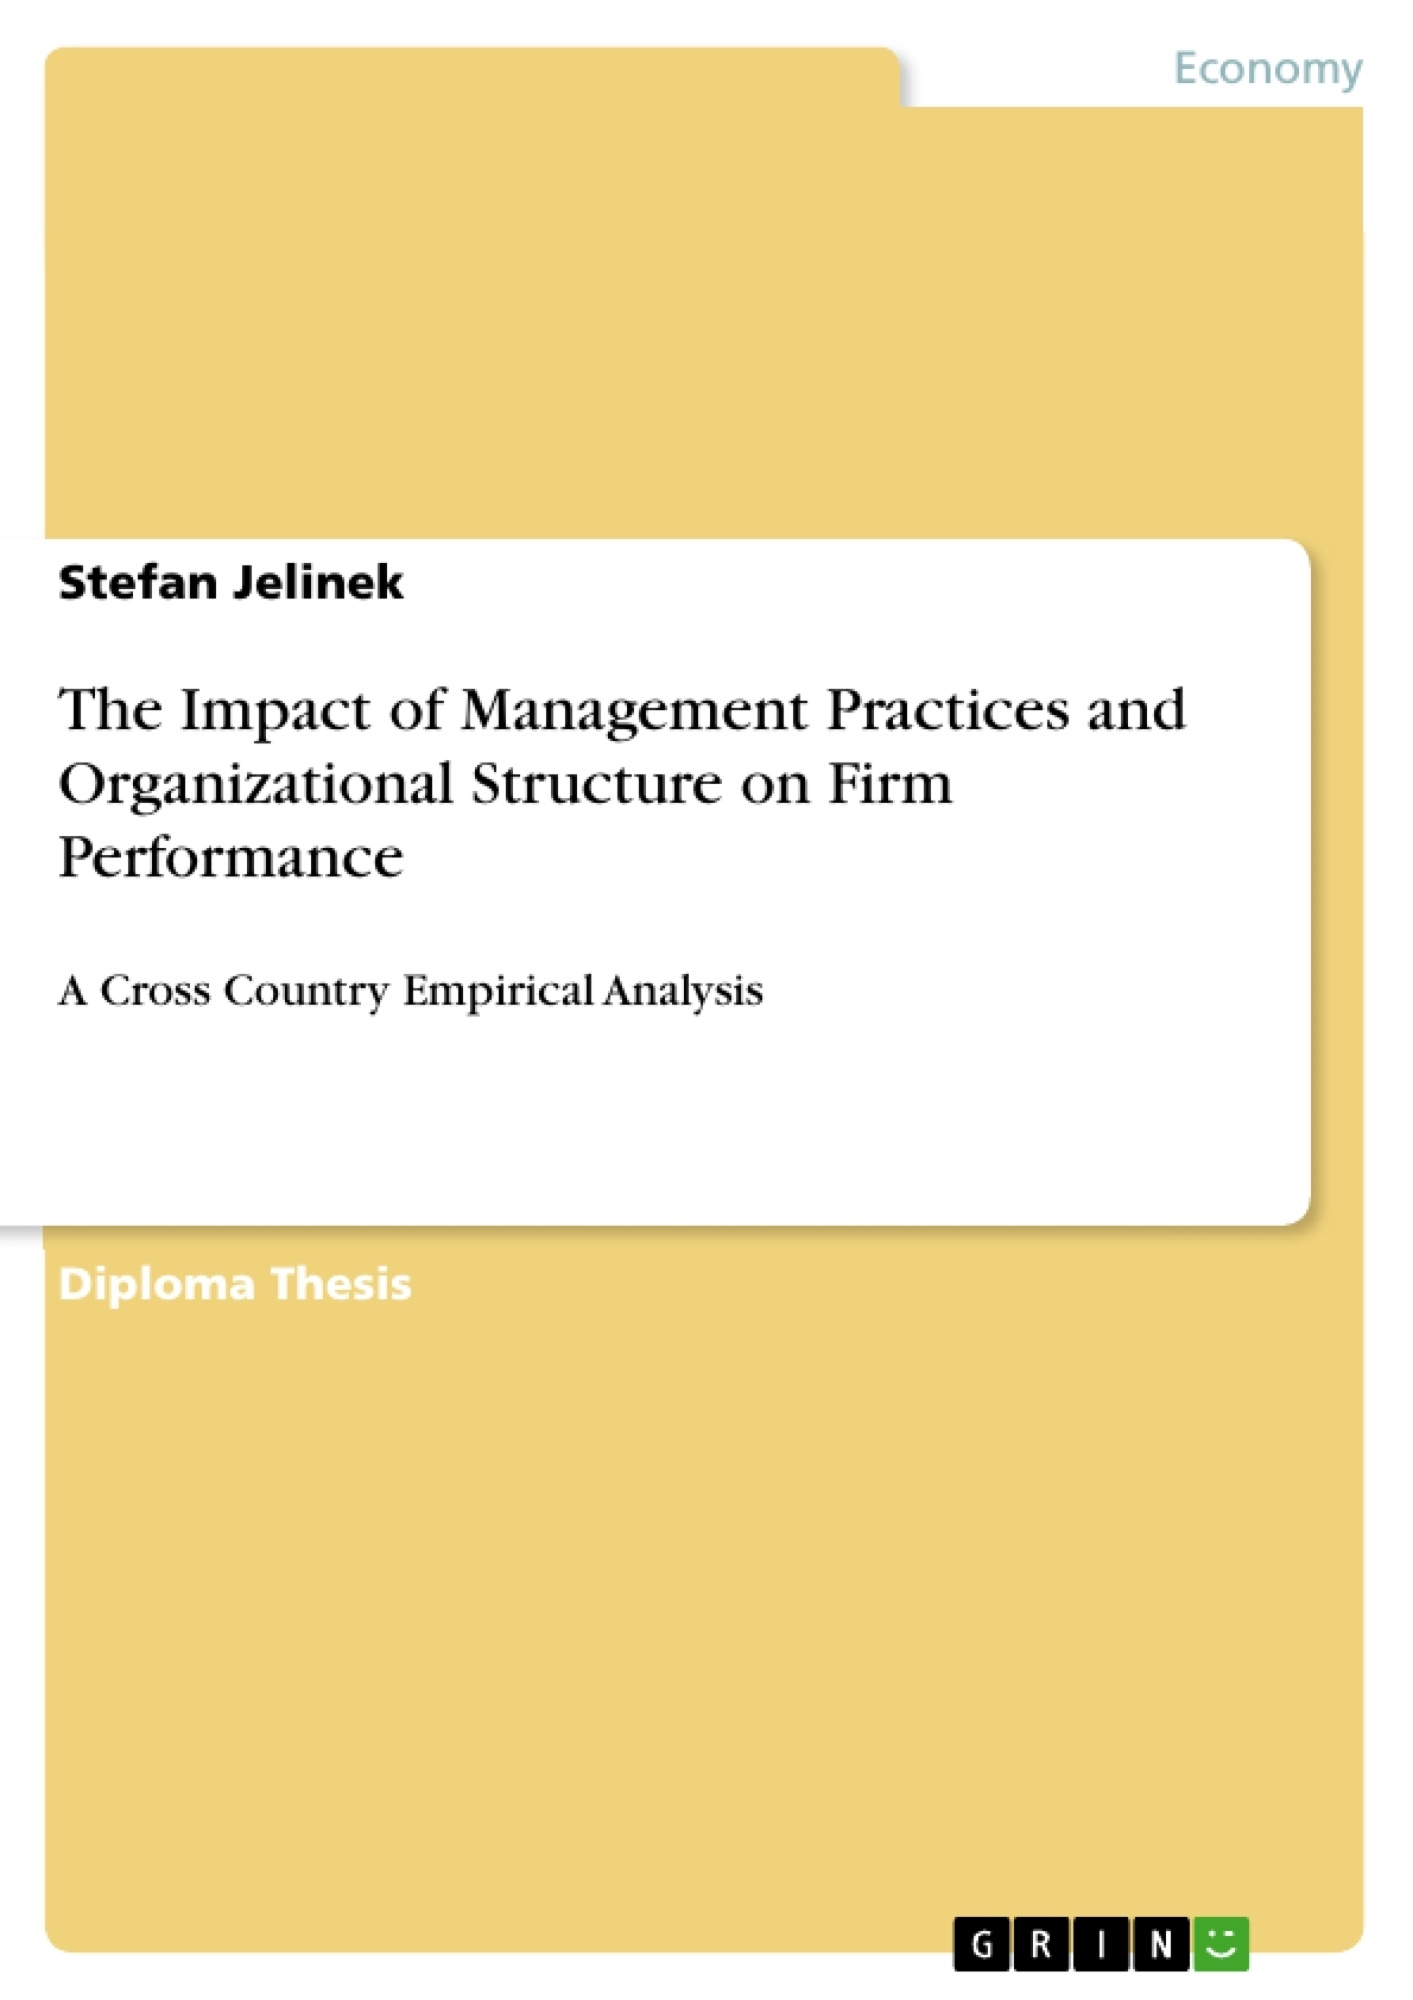 Conflicts in Organizations and Impact on Organizational Culture